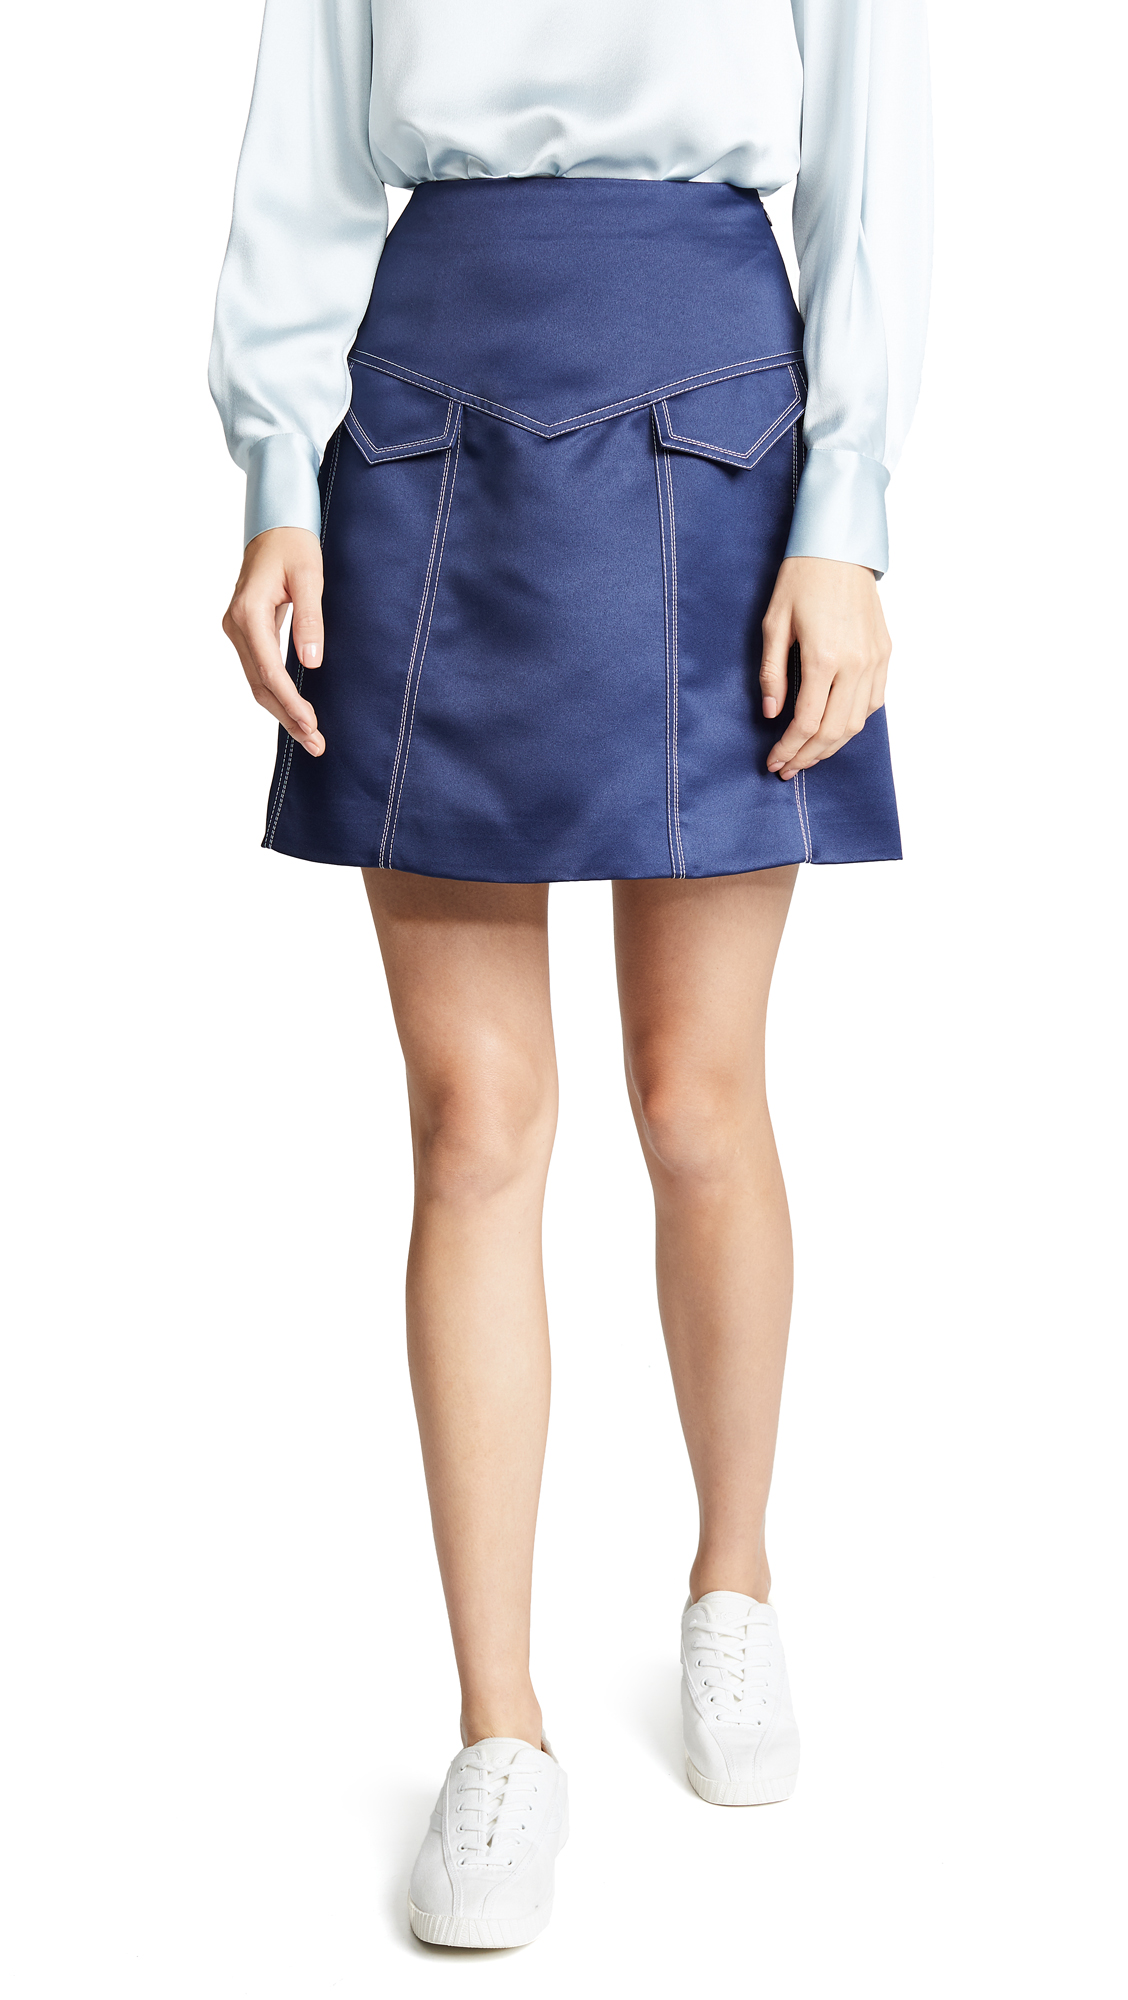 ANNA OCTOBER Contrast Stitch Tailored Skirt in Navy